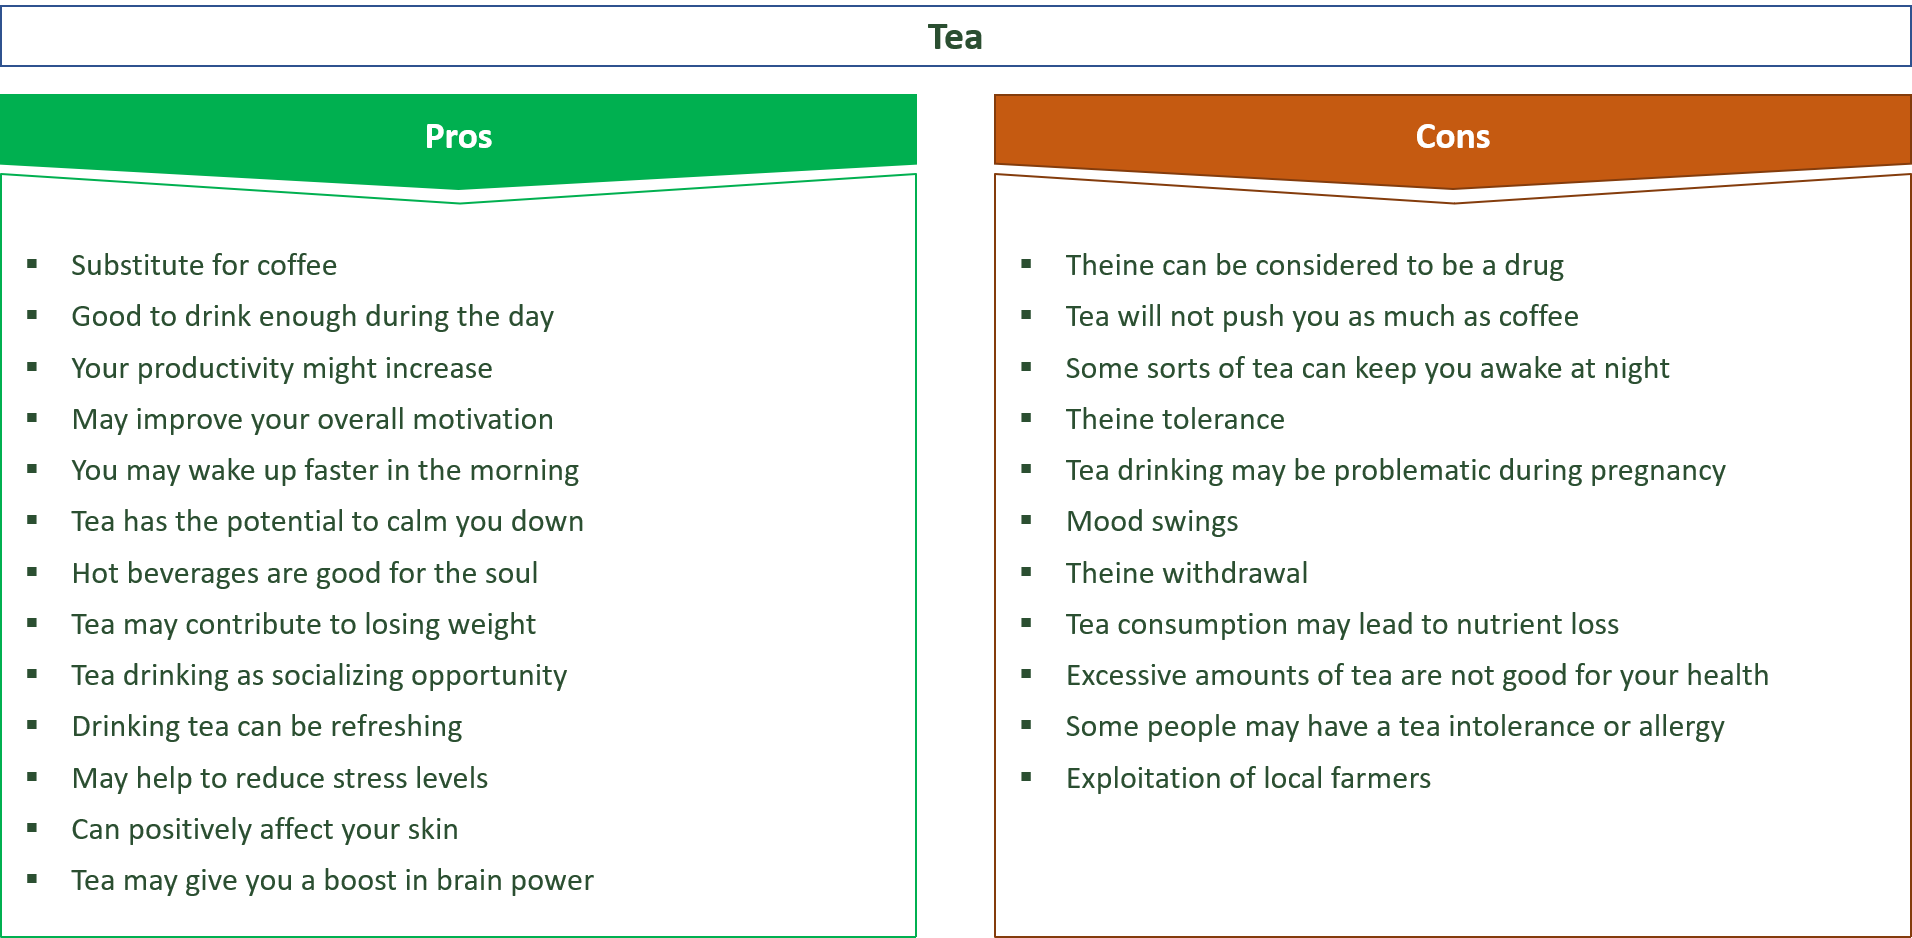 advantages and disadvantages of tea